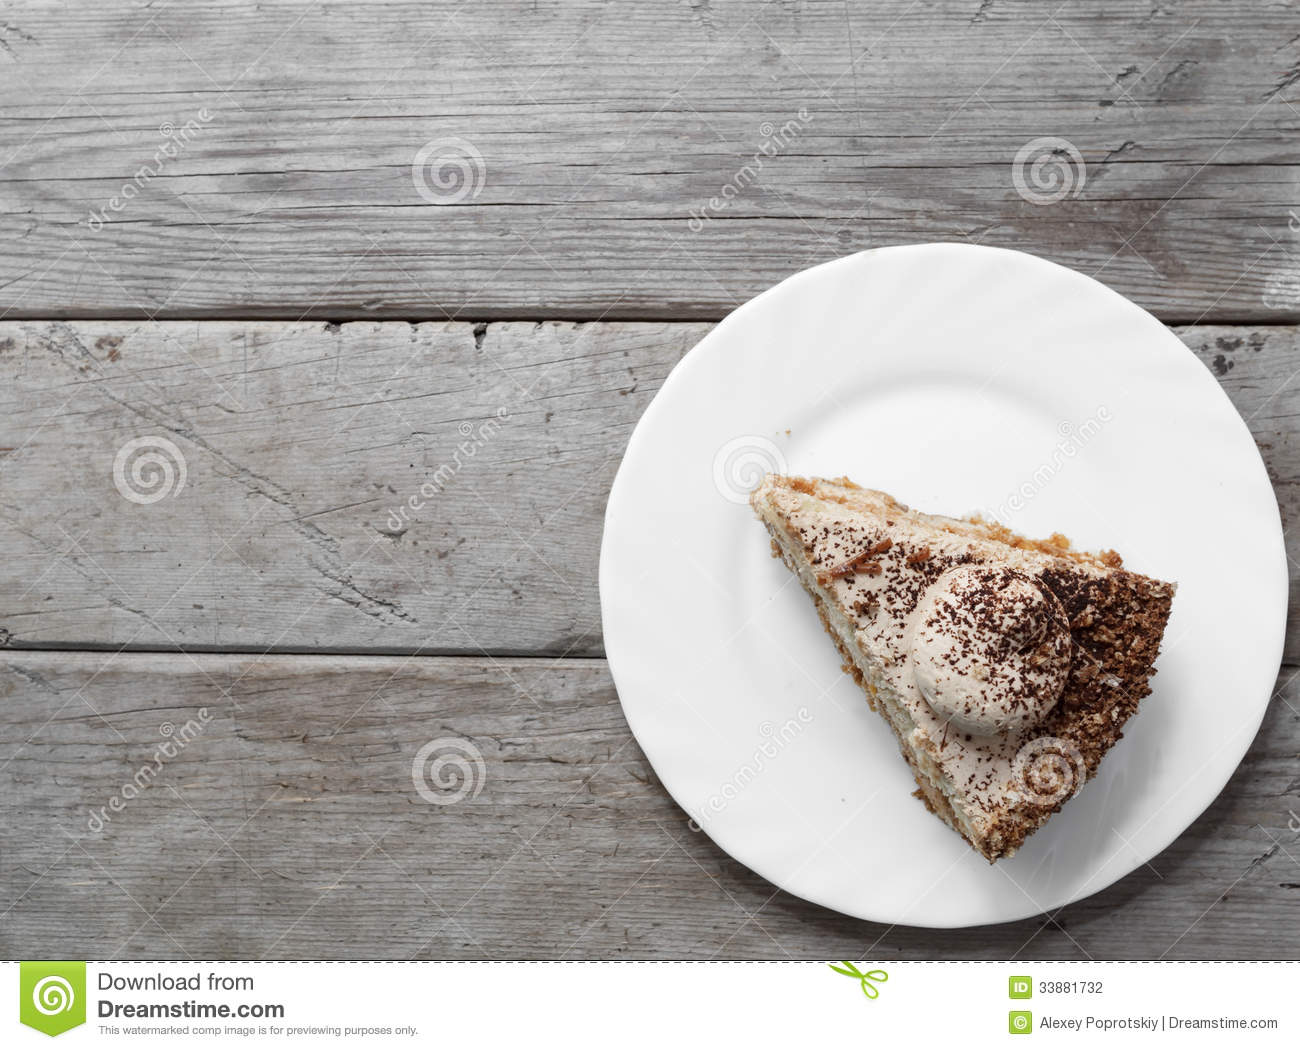 Piece of cake stock photo. Image of appetizing, wooden ...